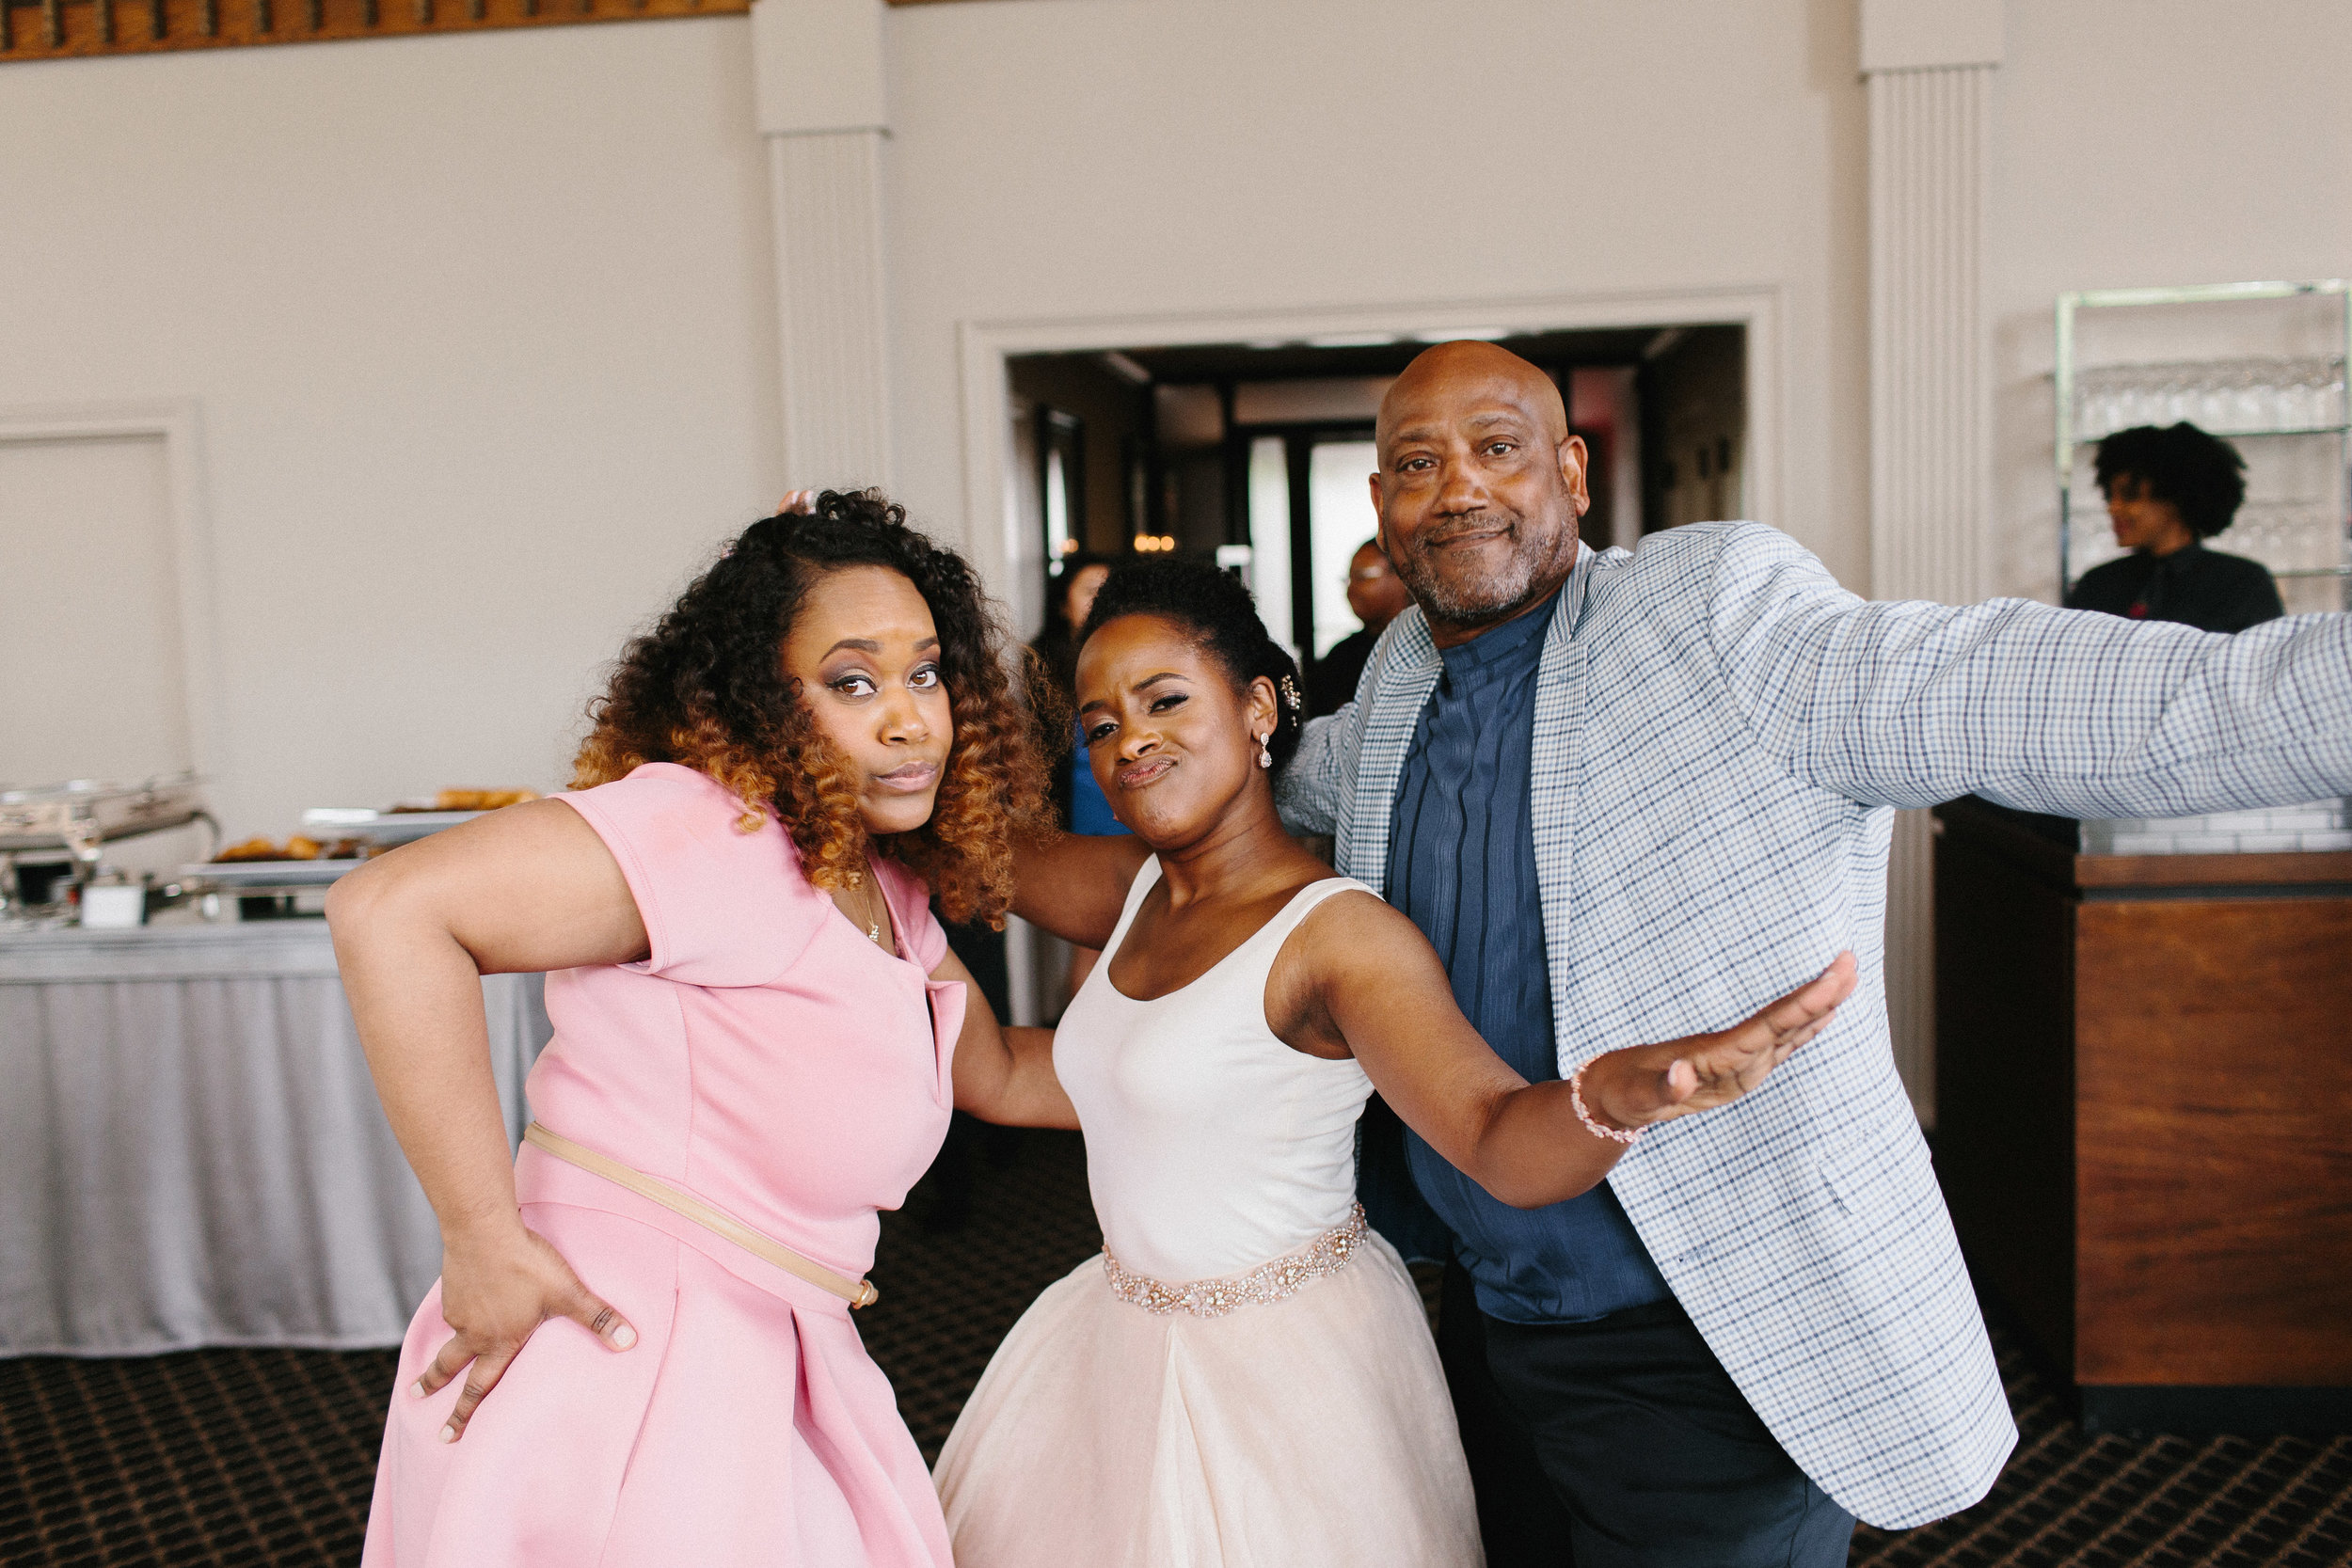 the_atrium_wedding_atlanta_norcross_lifestyle_photographers_lgbtq_1560.jpg